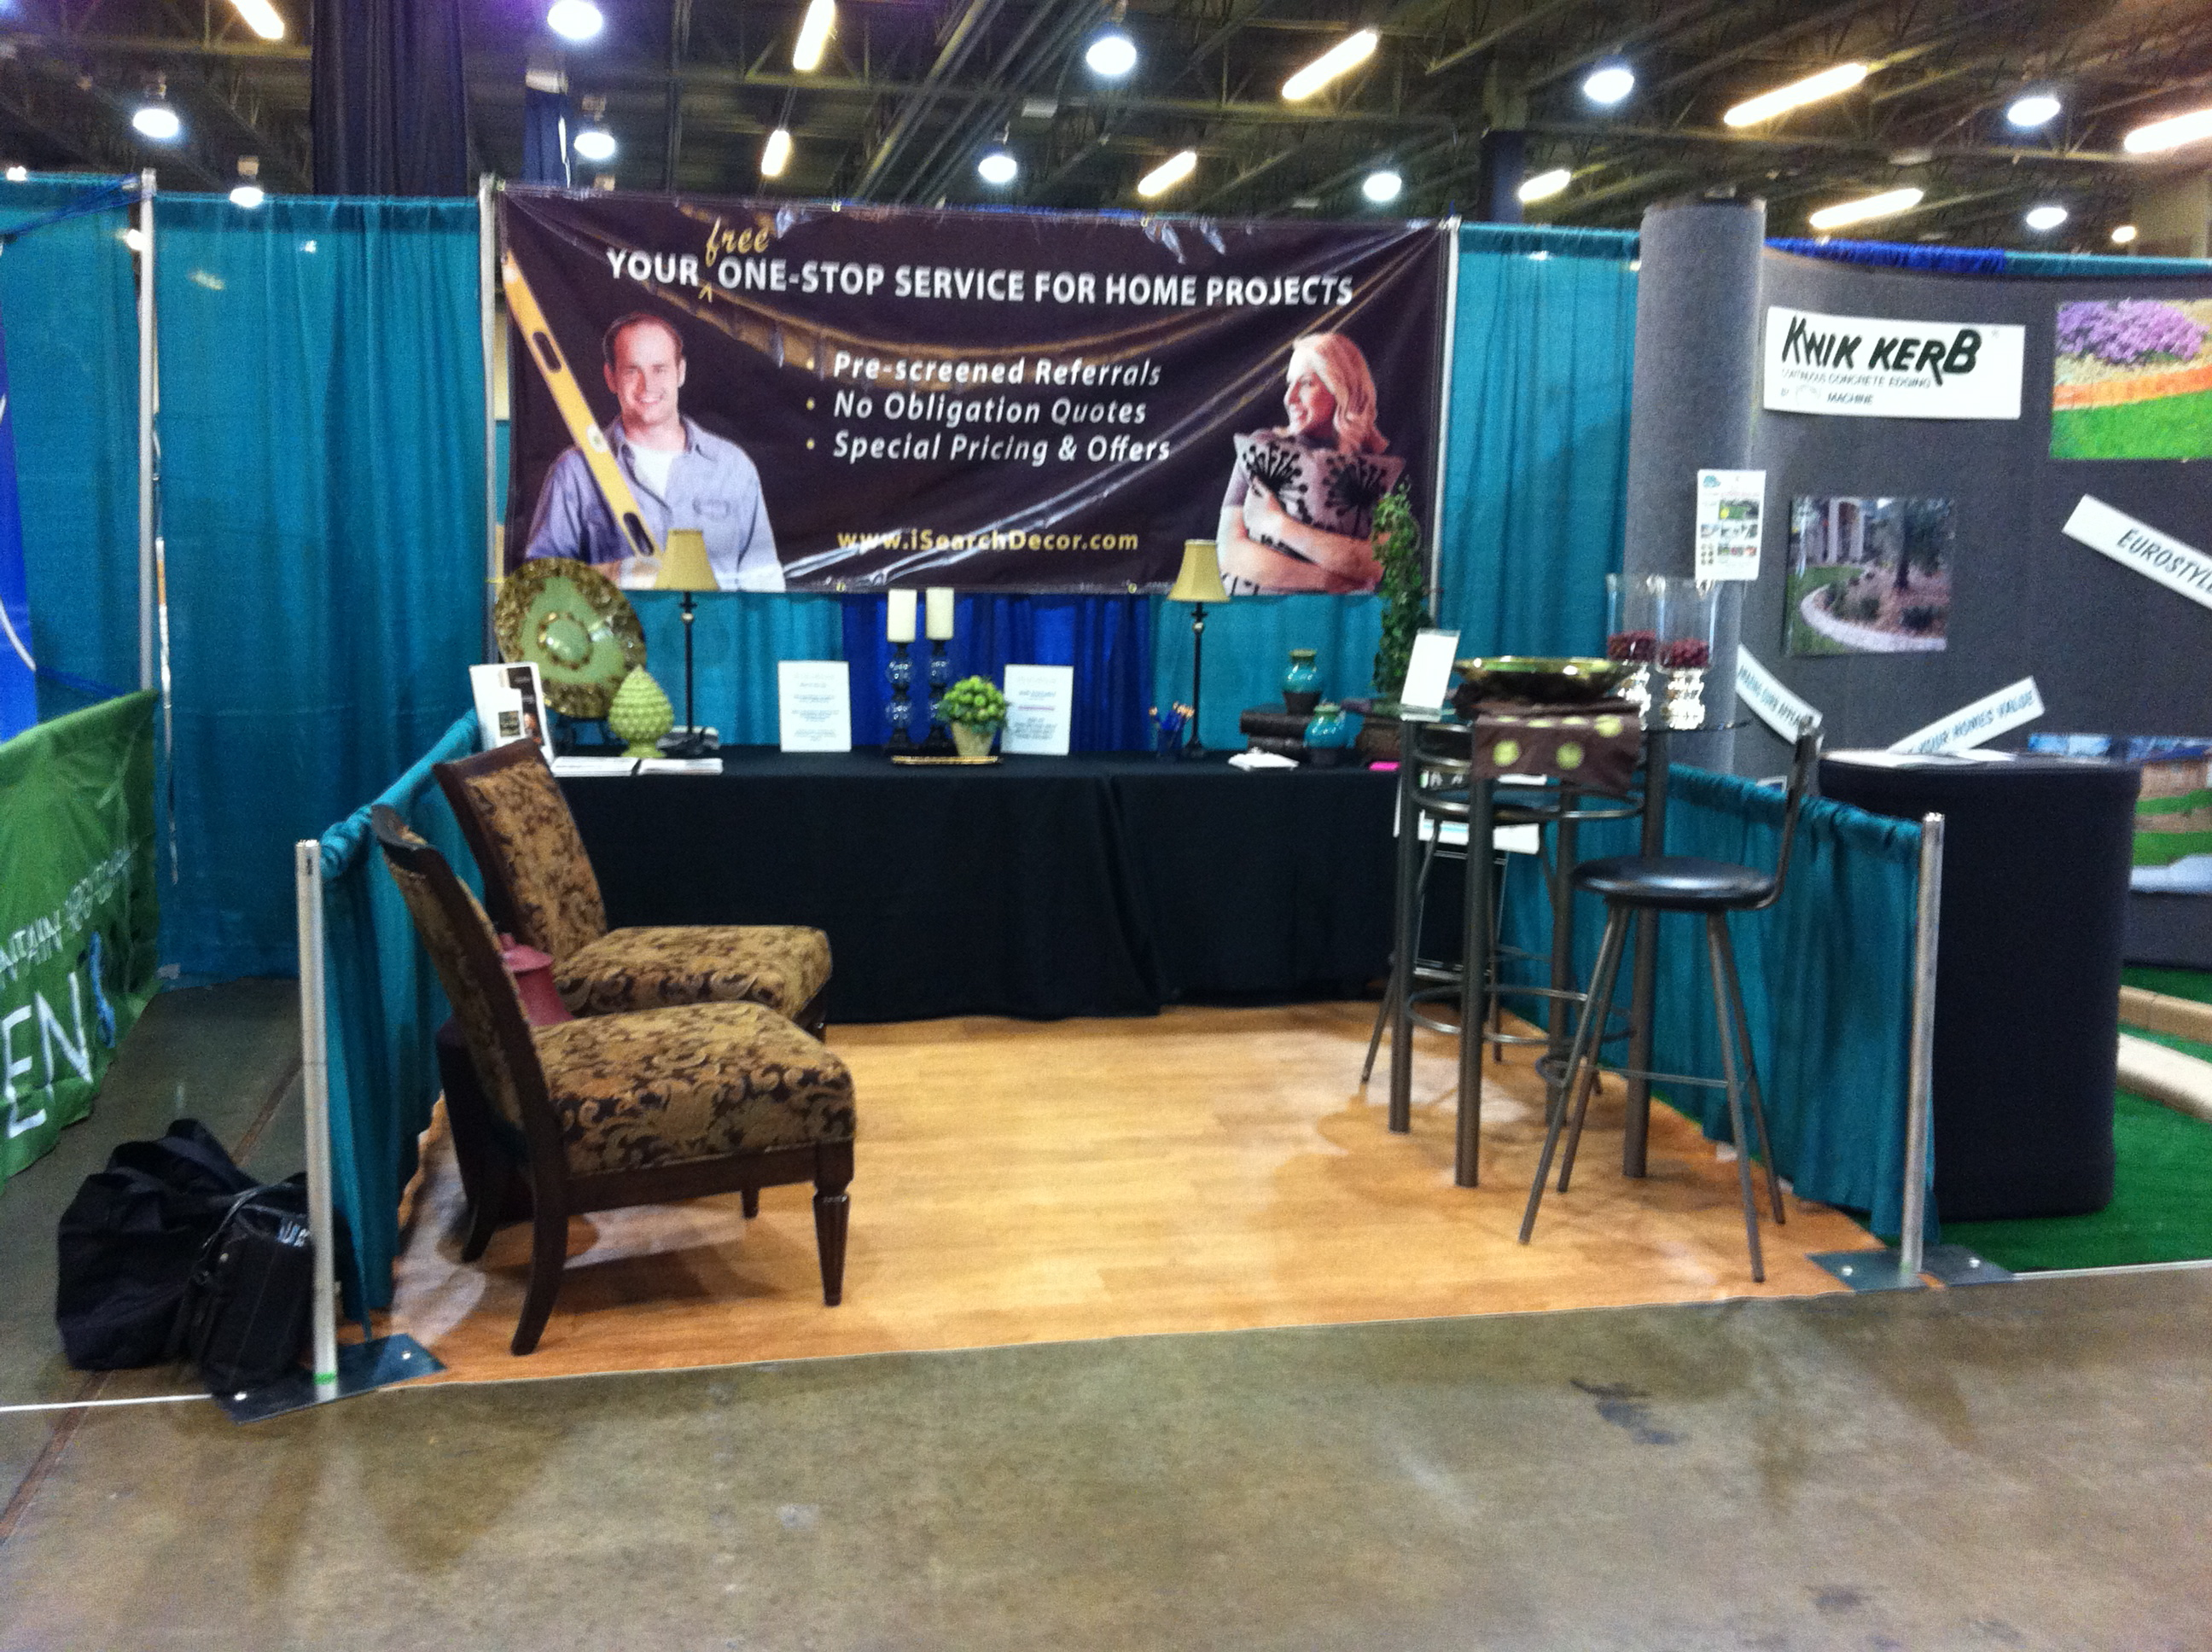 Captivating Dallas Home Decor, Home Improvement, Service Pros. Dallas Home Show Photo